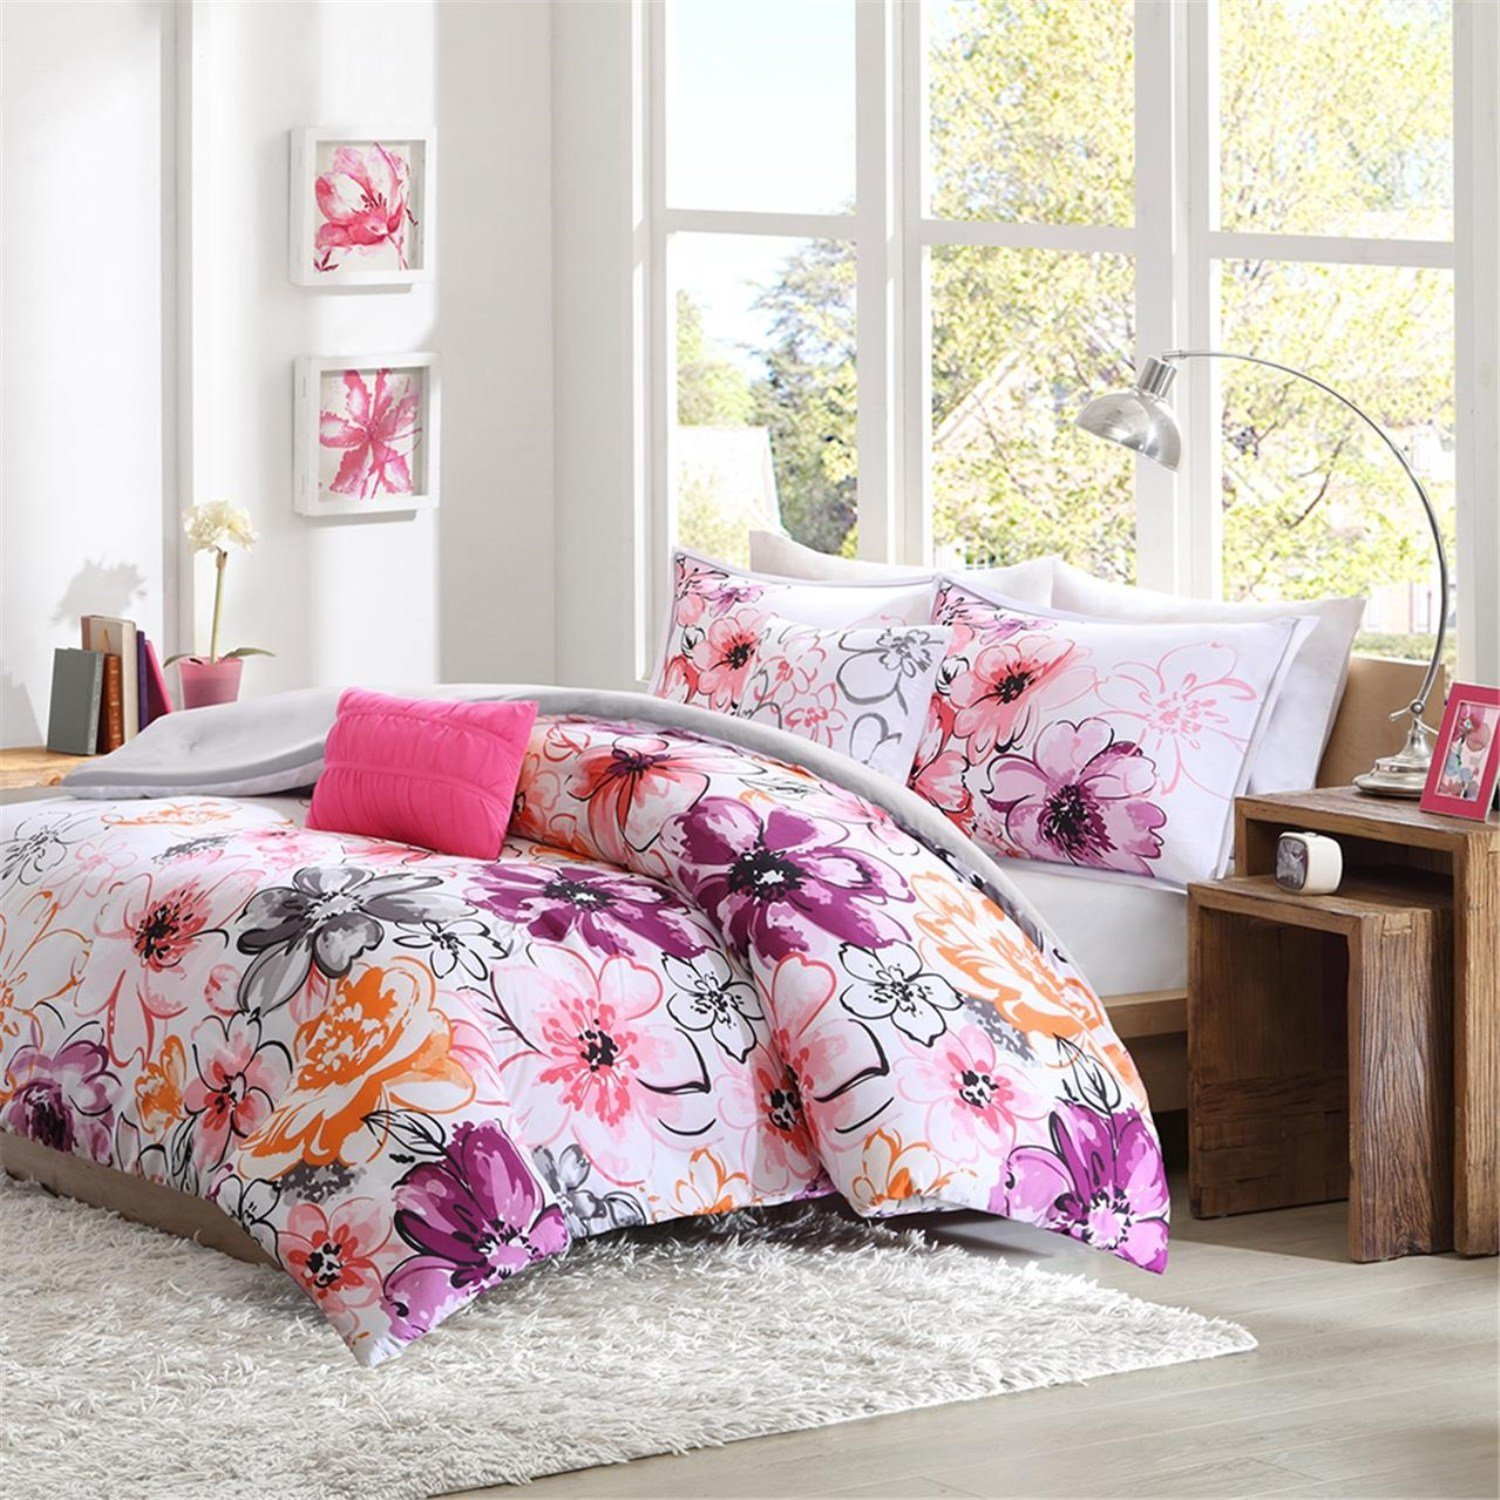 Intelligent Design Olivia 4 Piece Comforter Set, Twin/Twin X-Large, Pink